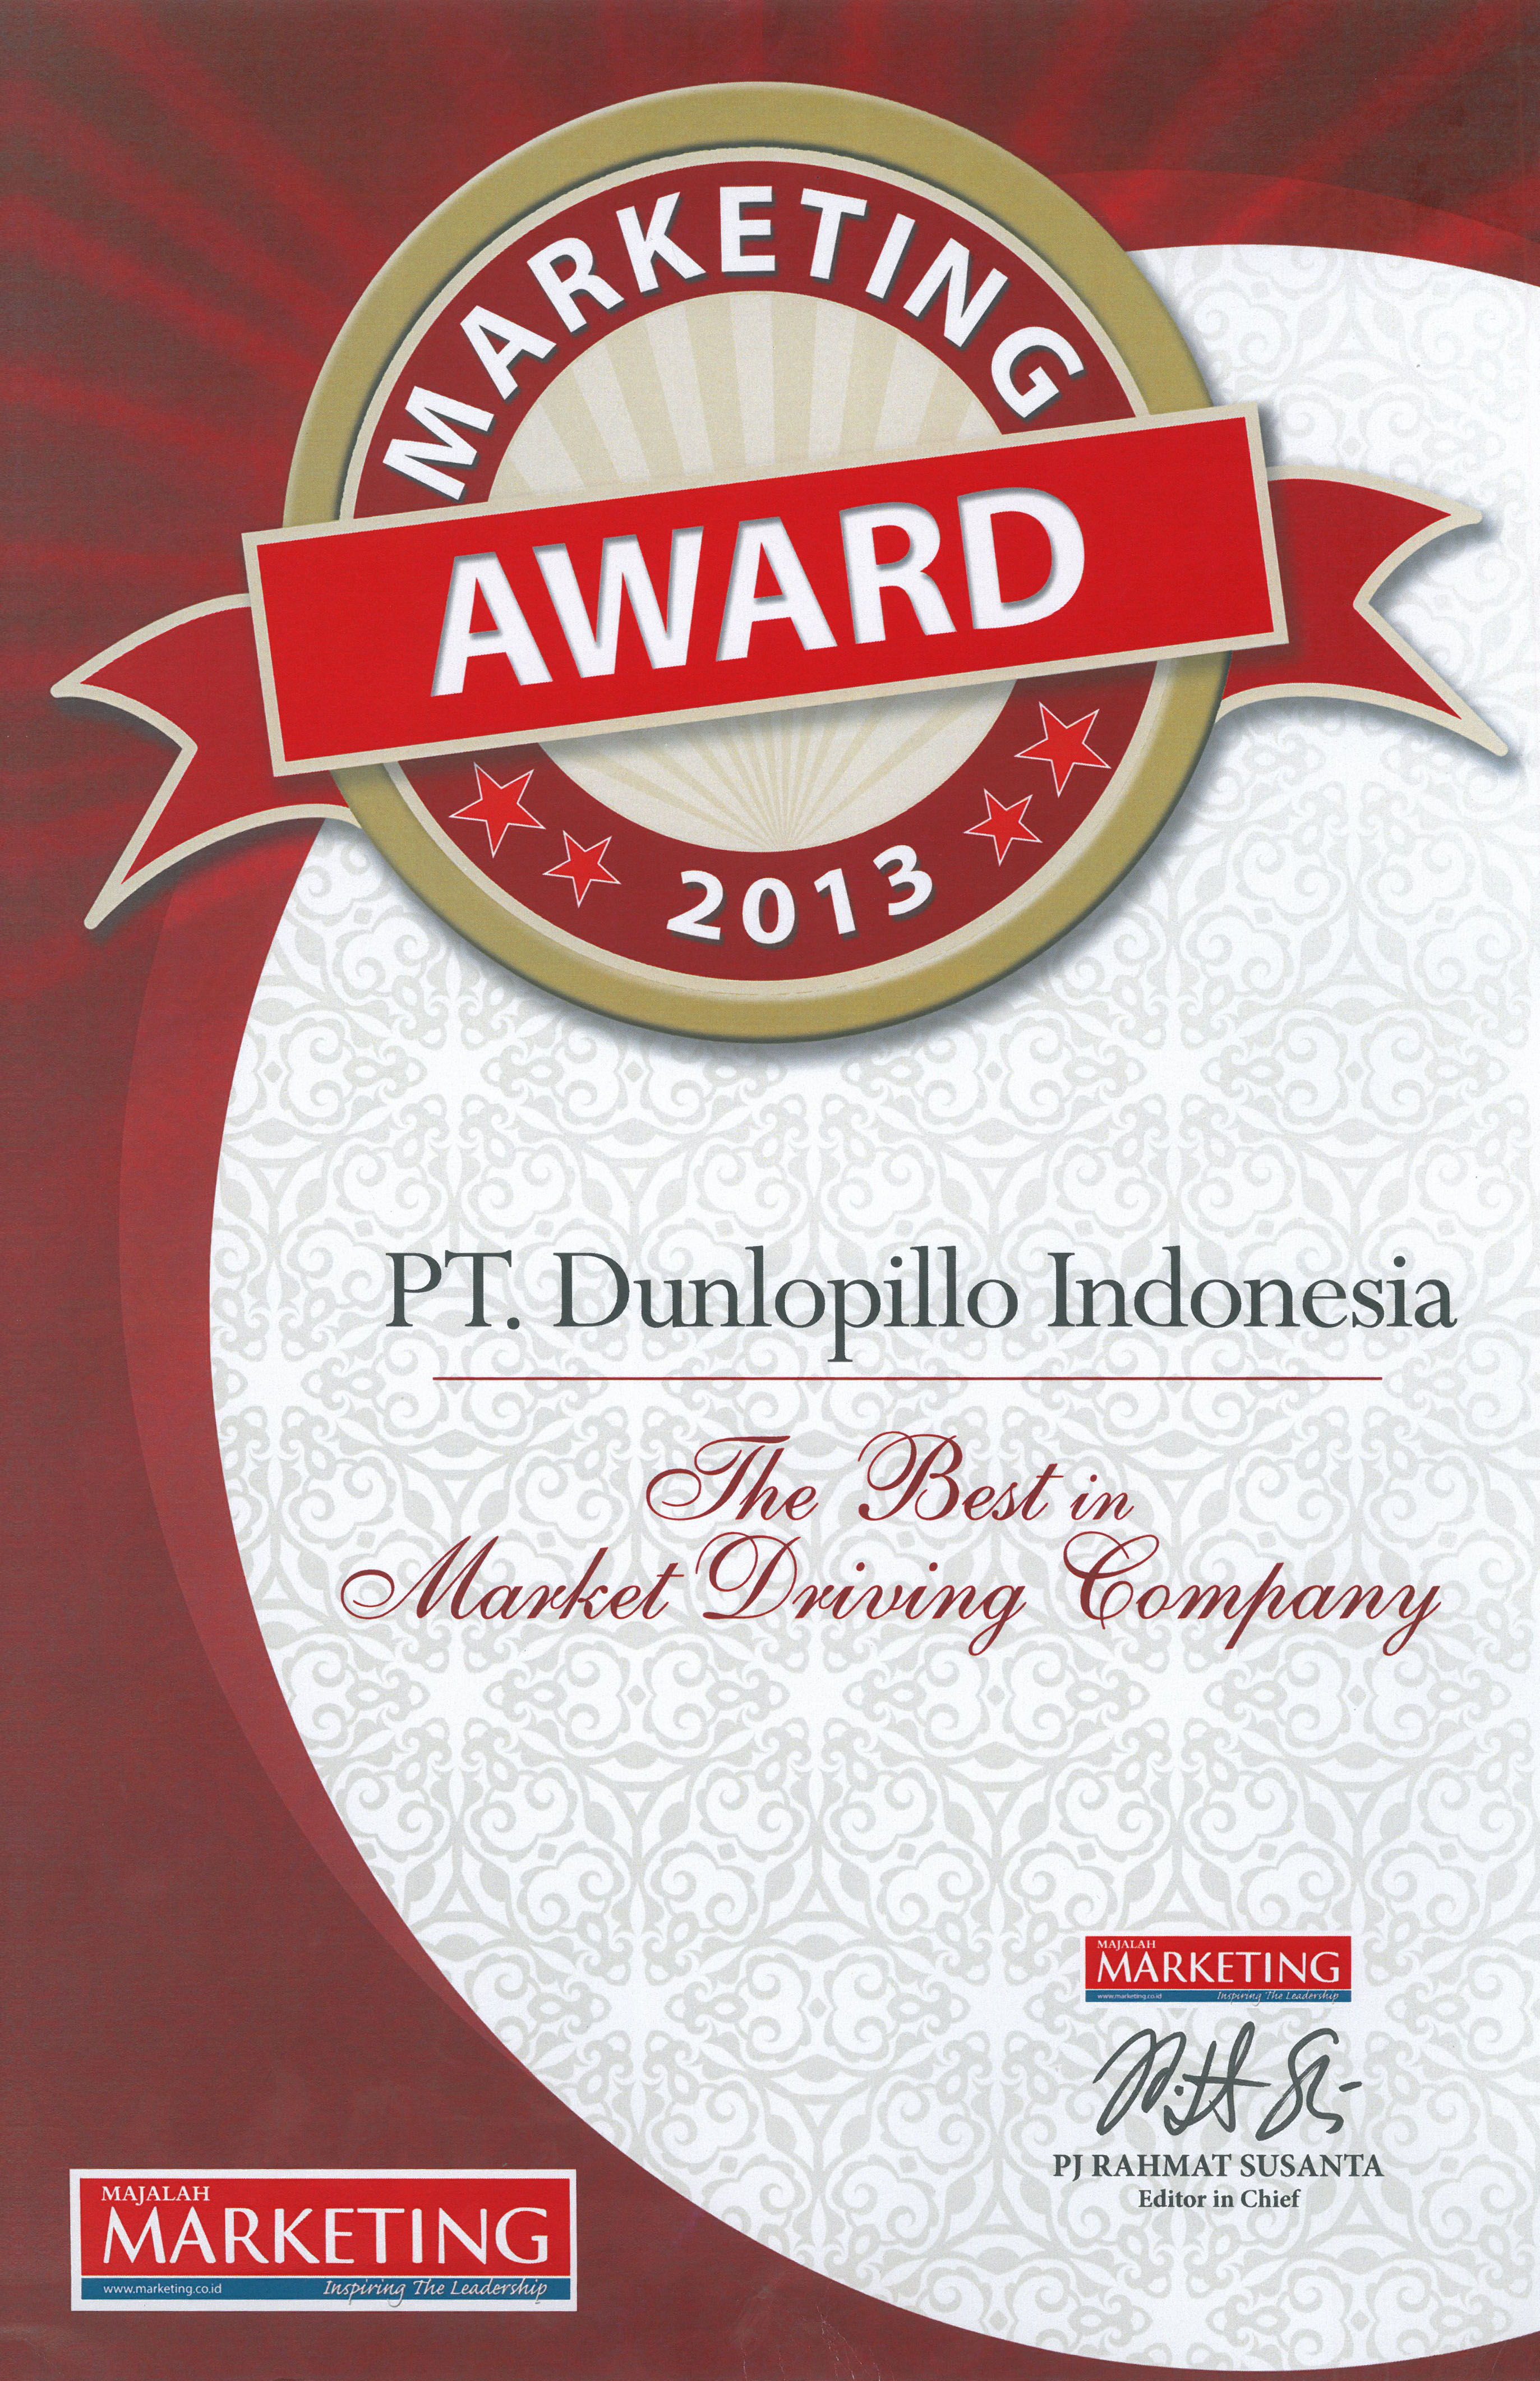 Marketing Award (Best in Market Driving Company)